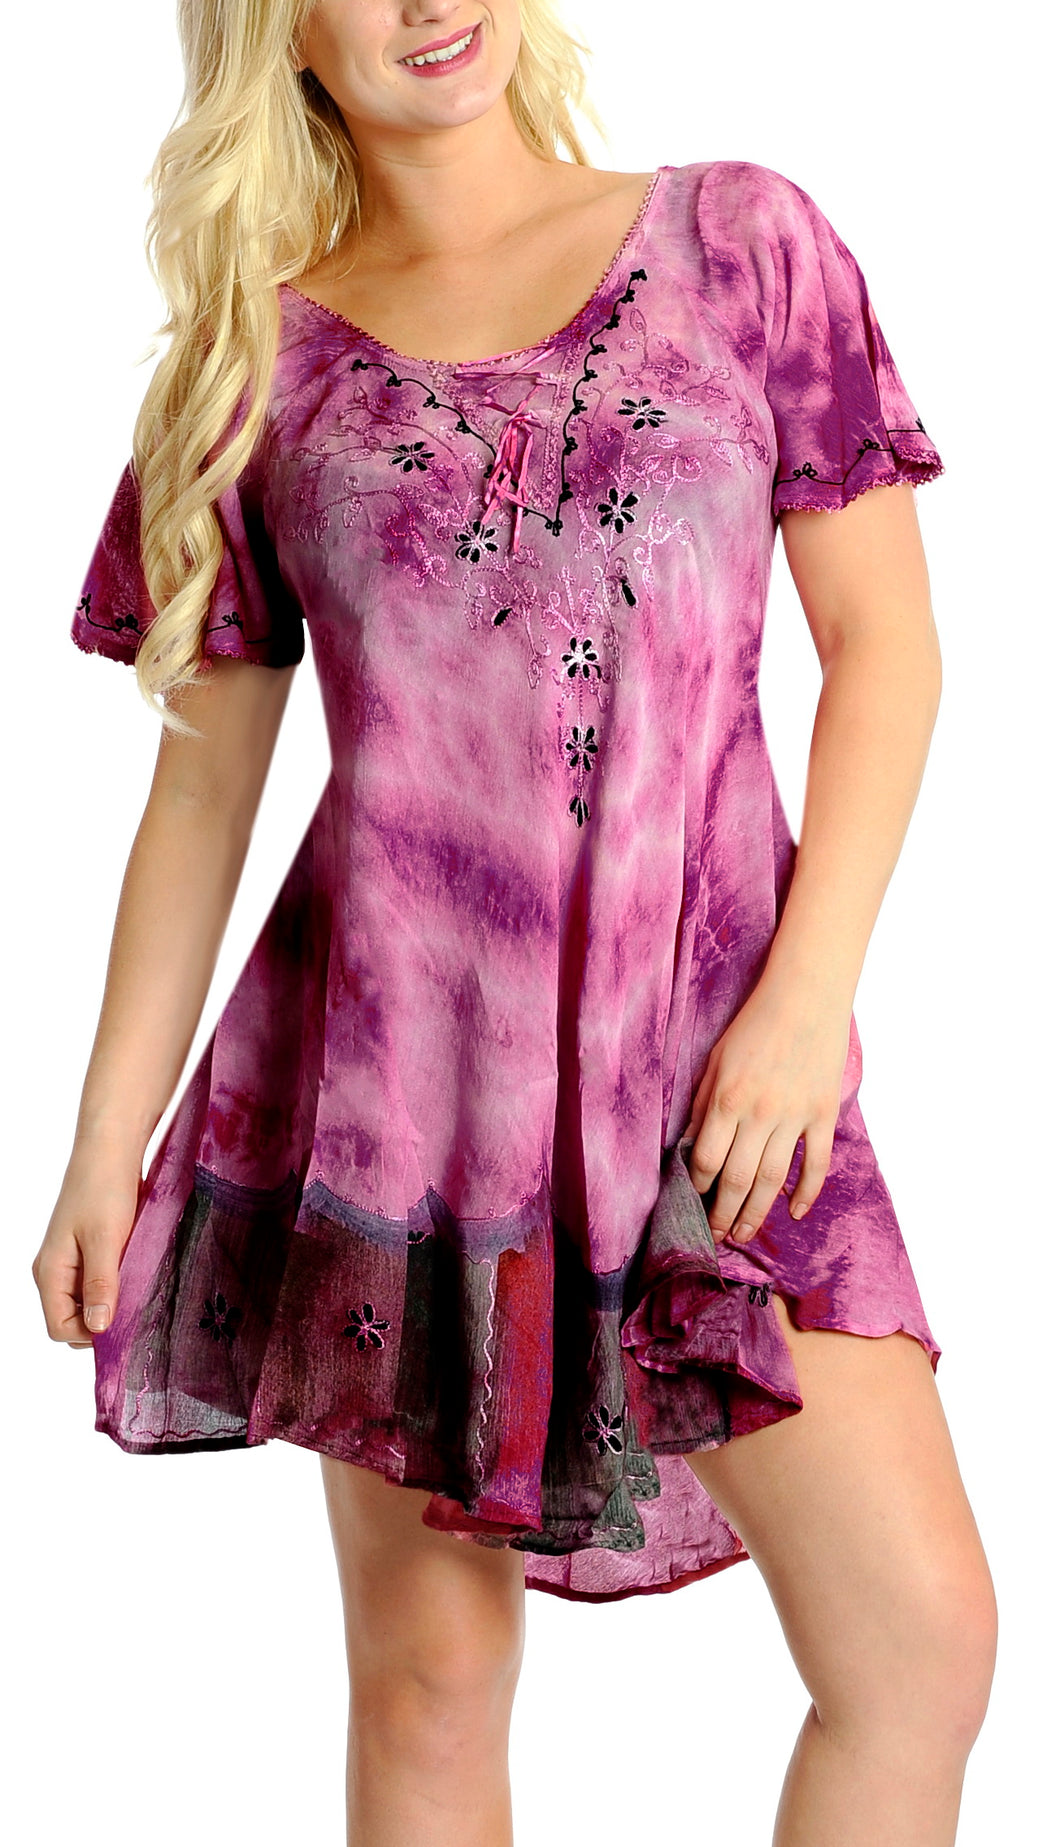 la-leela-casual-dress-beach-cover-up-rayon-tie-dye-aloha-beach-women-top-floral-pink-532-one-size